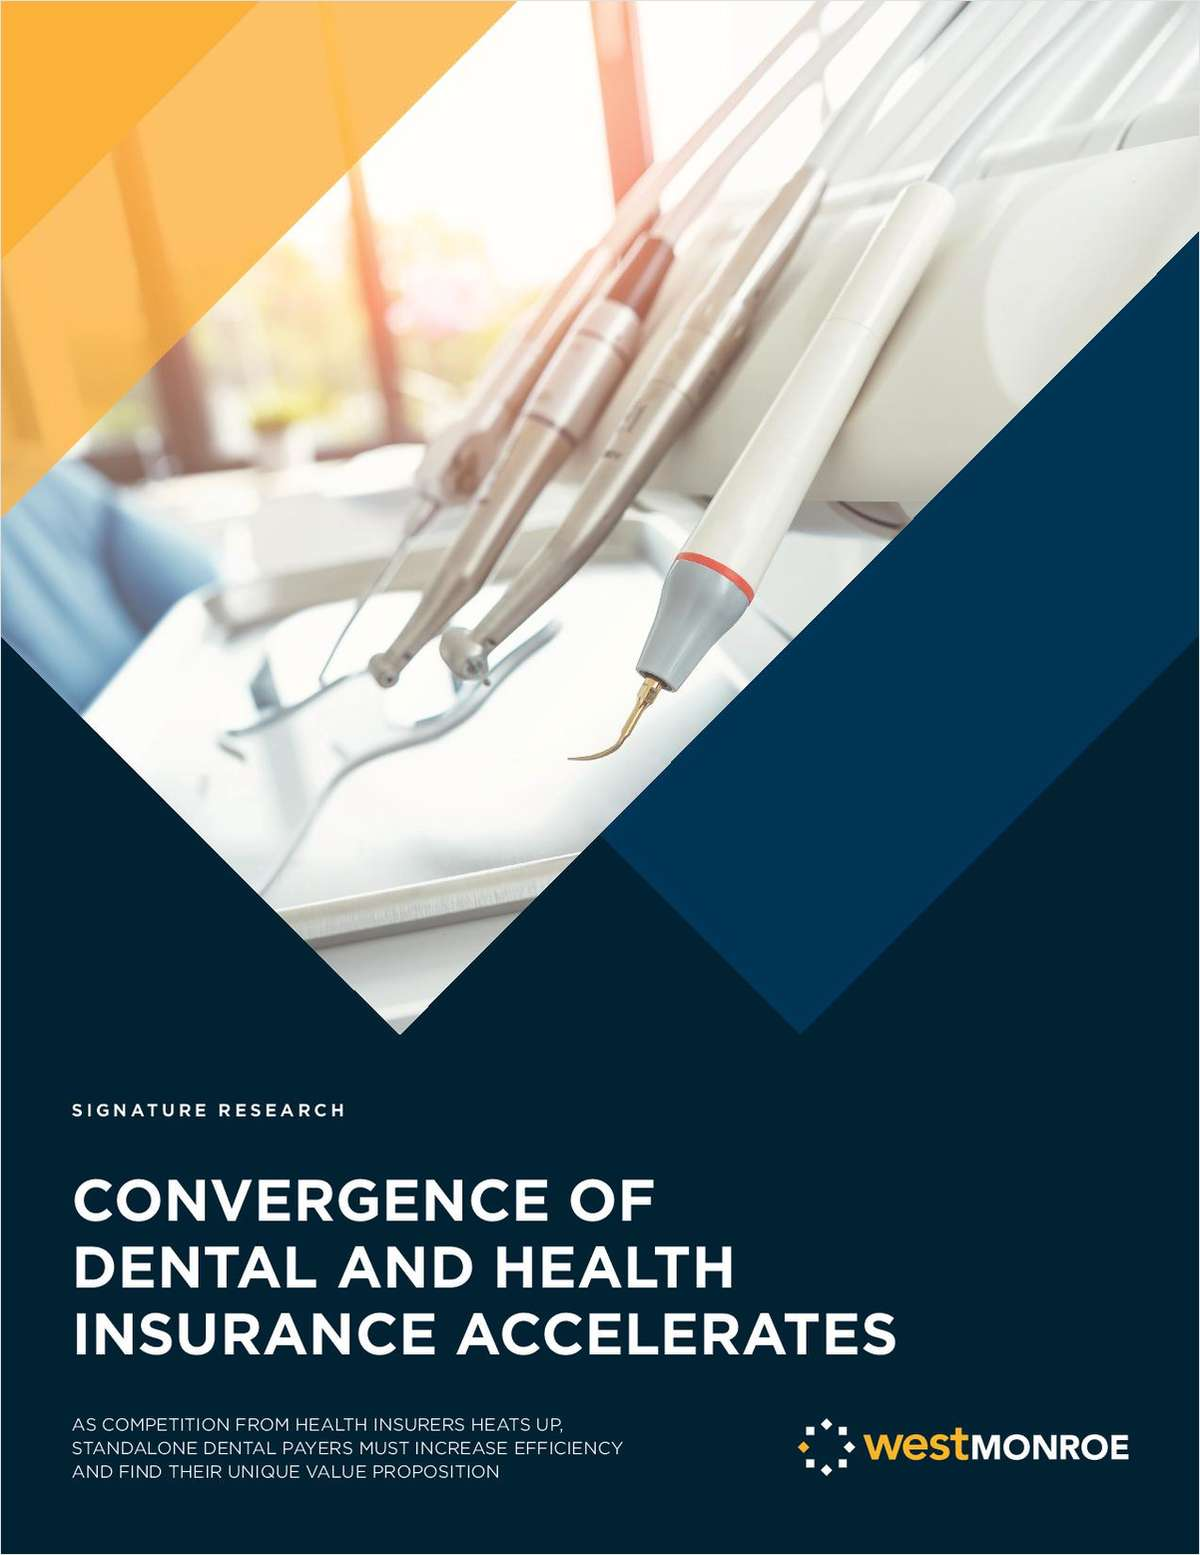 Convergence of Dental and Health Insurance Accelerates